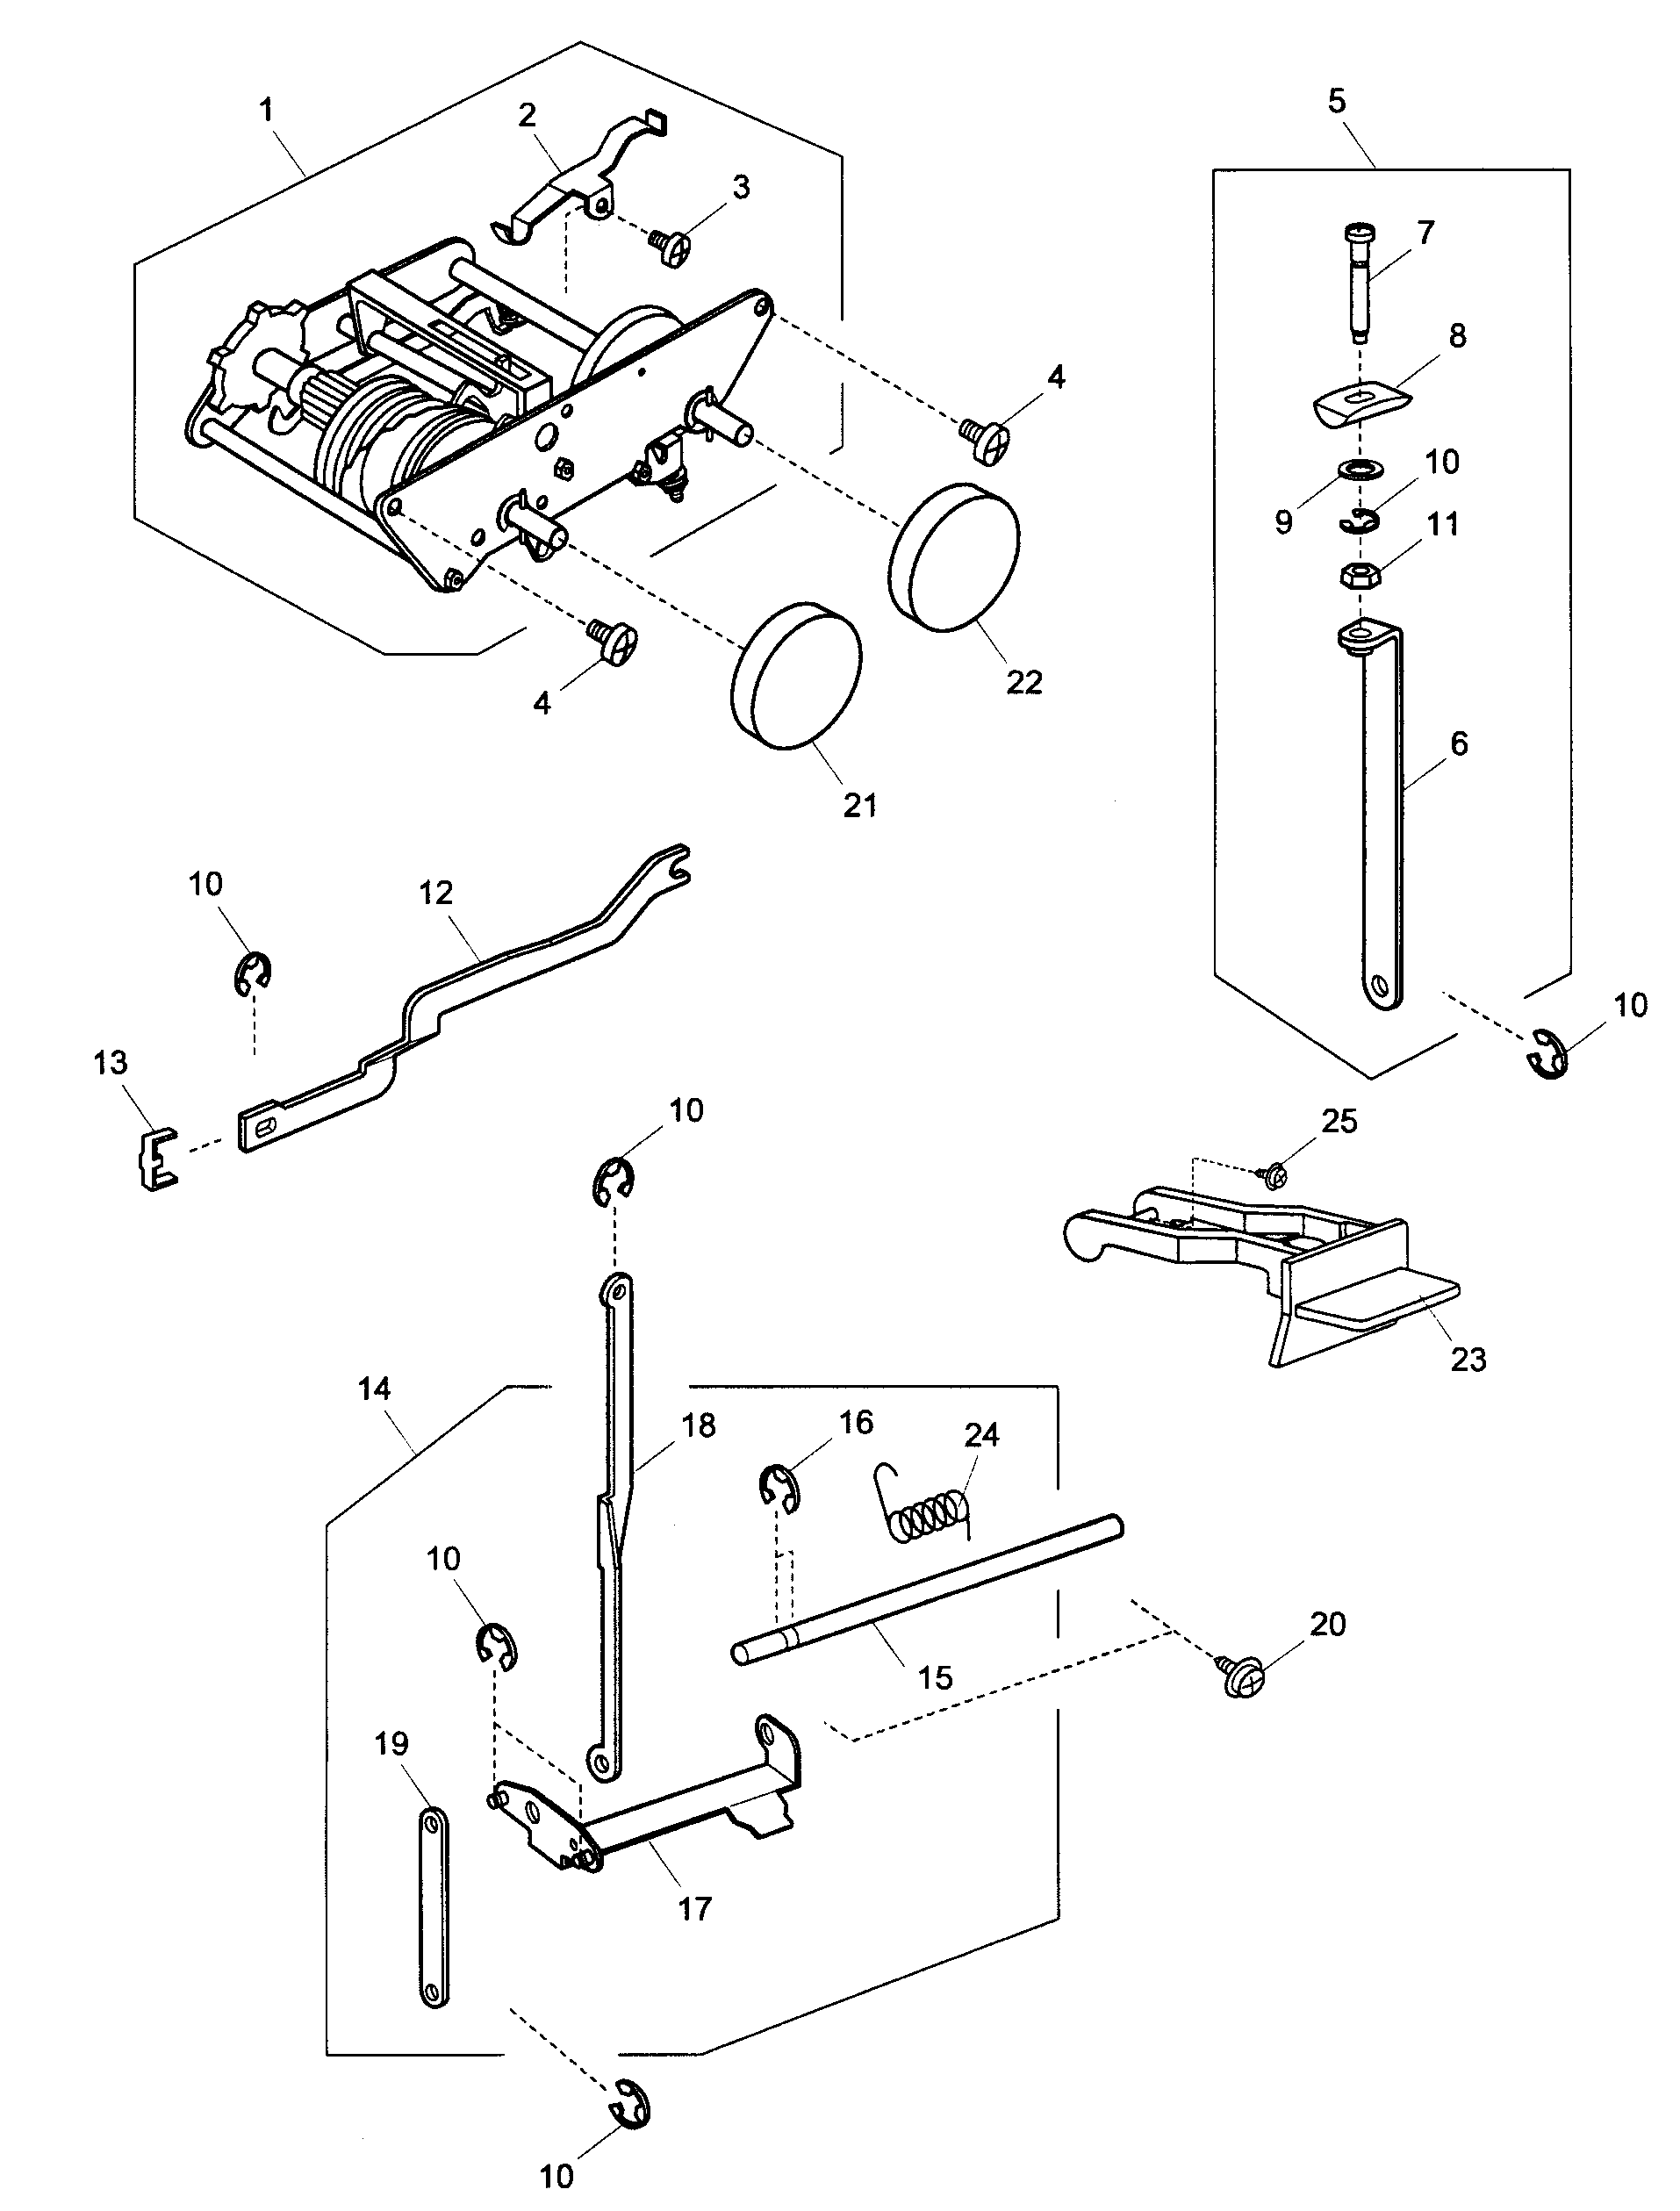 CAM BLOCK Diagram & Parts List for Model 38519112 Kenmore